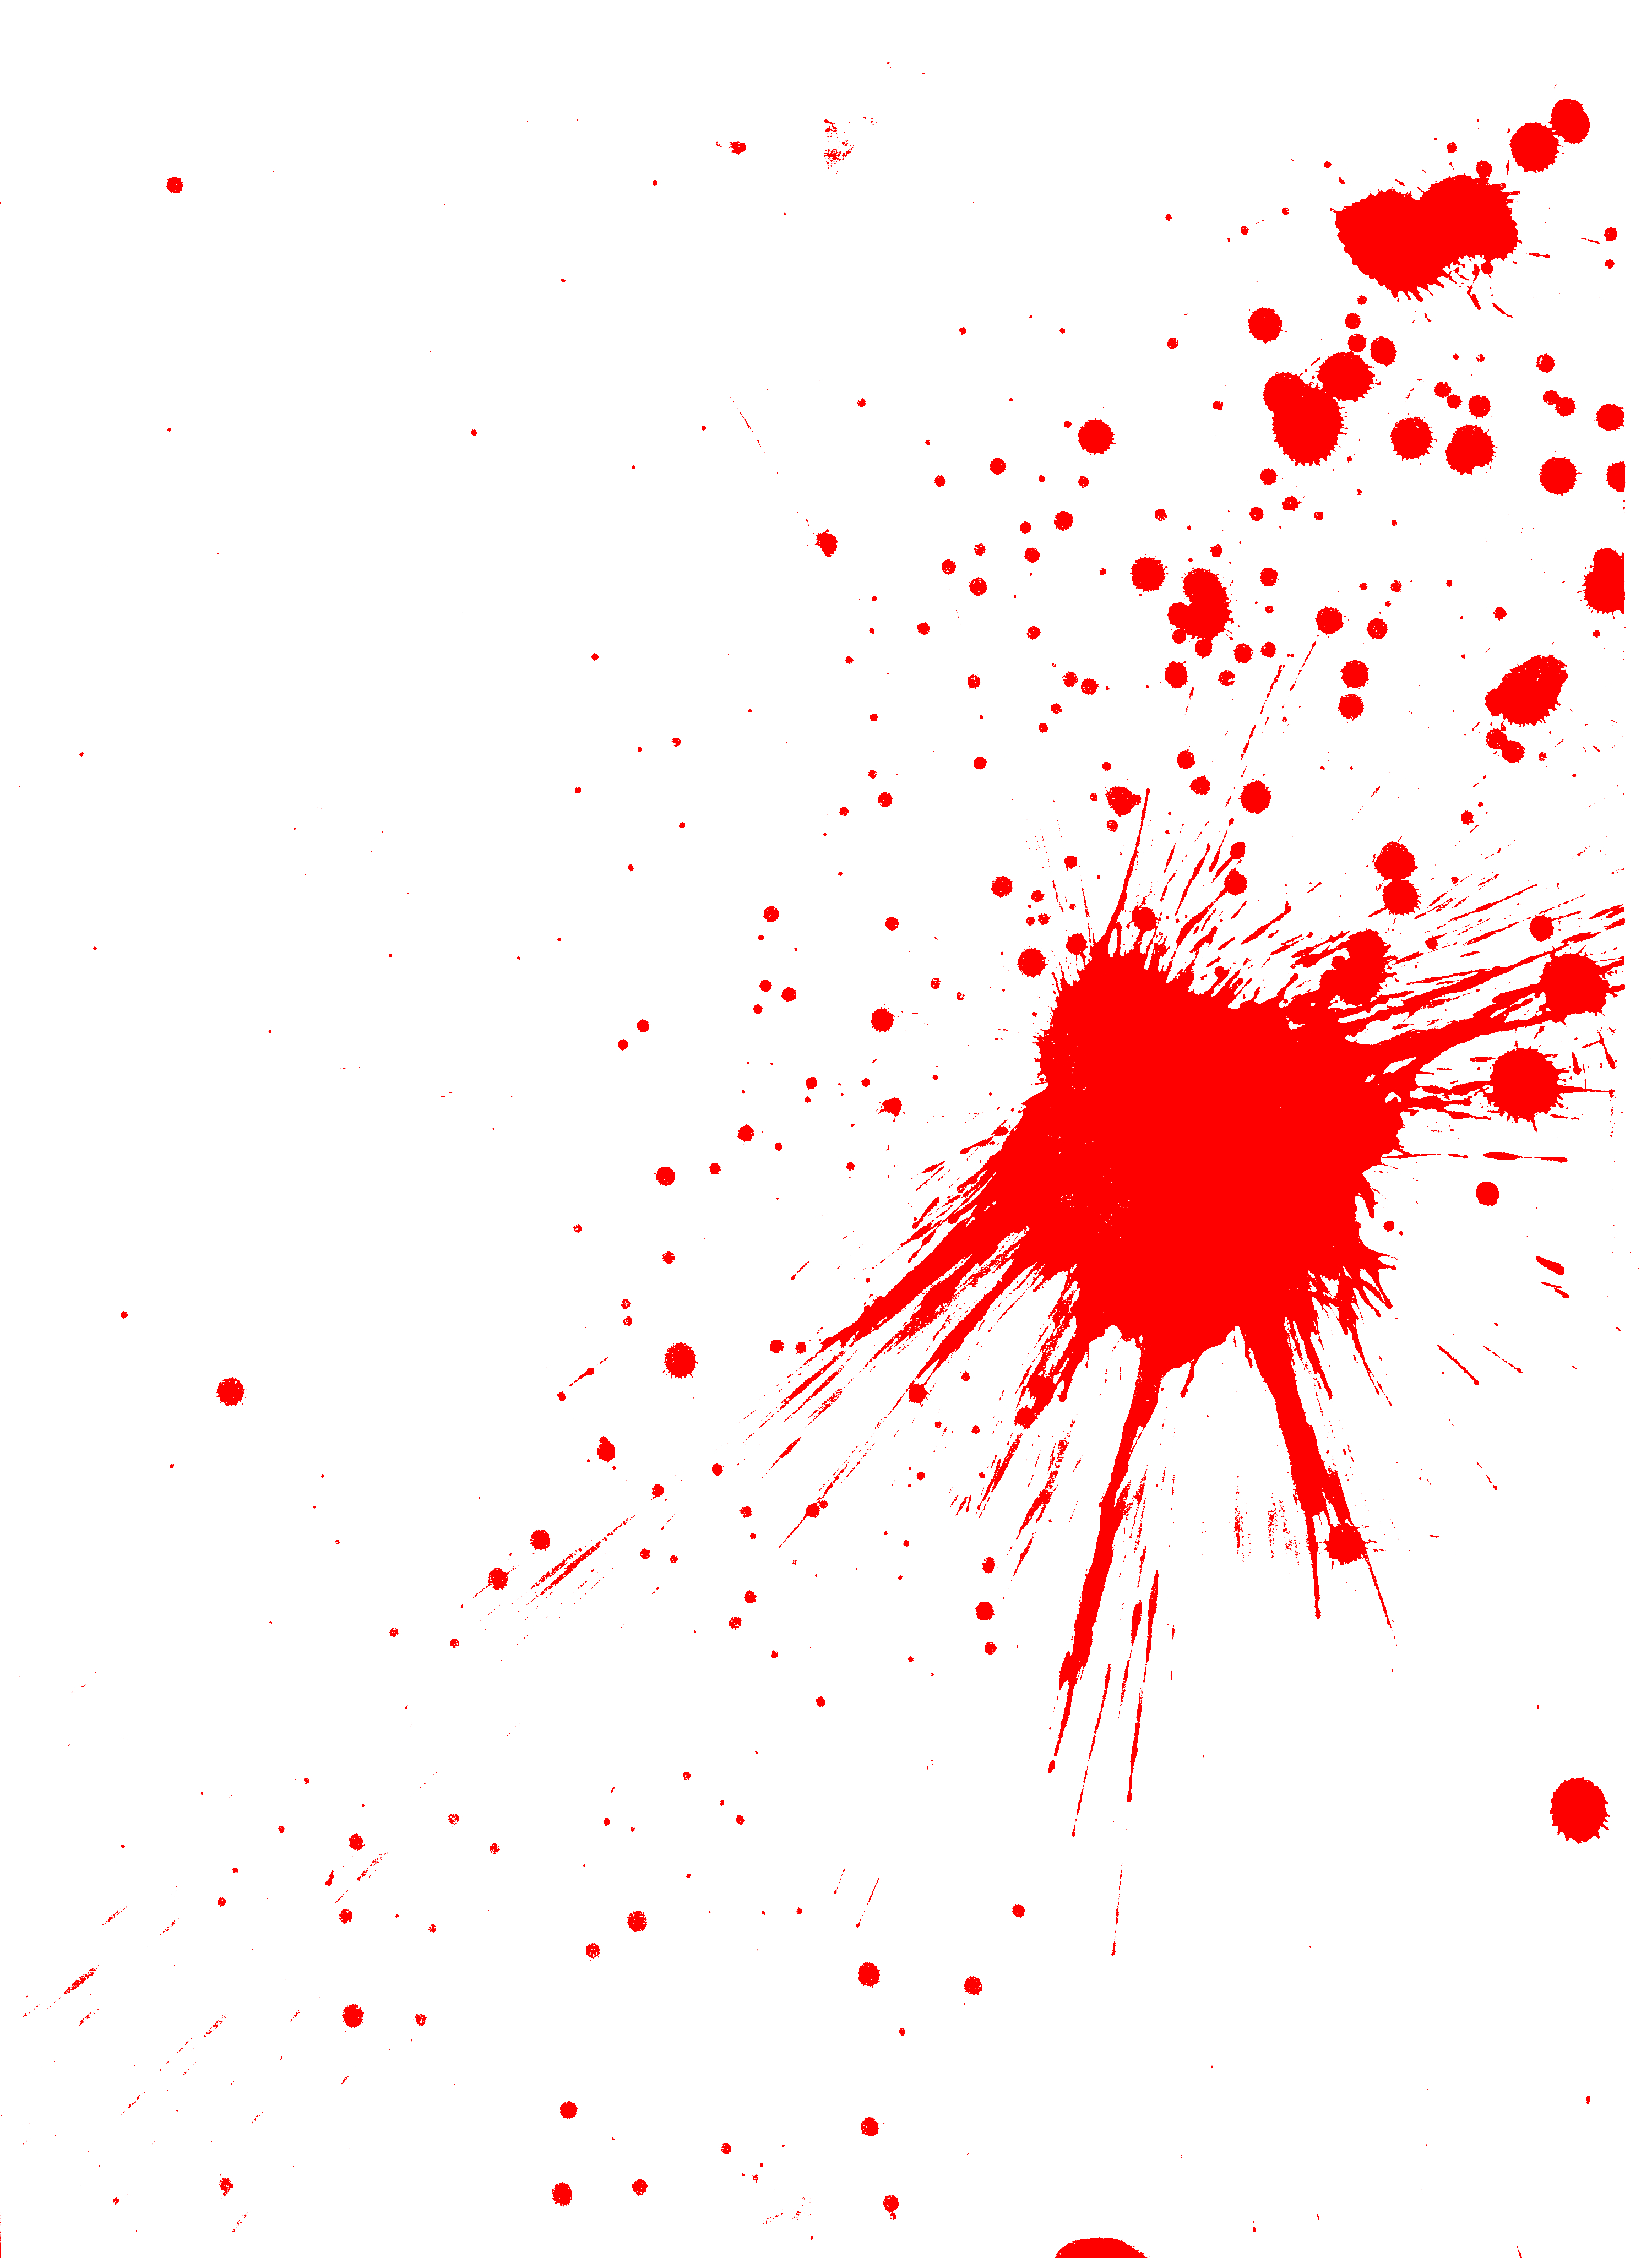 15 Blood Splatter Textures Jpg Onlygfx Com Pngtree offers over 1468 blood png and vector images, as well as transparant background blood clipart images and psd files.download the free graphic resources in. 15 blood splatter textures jpg